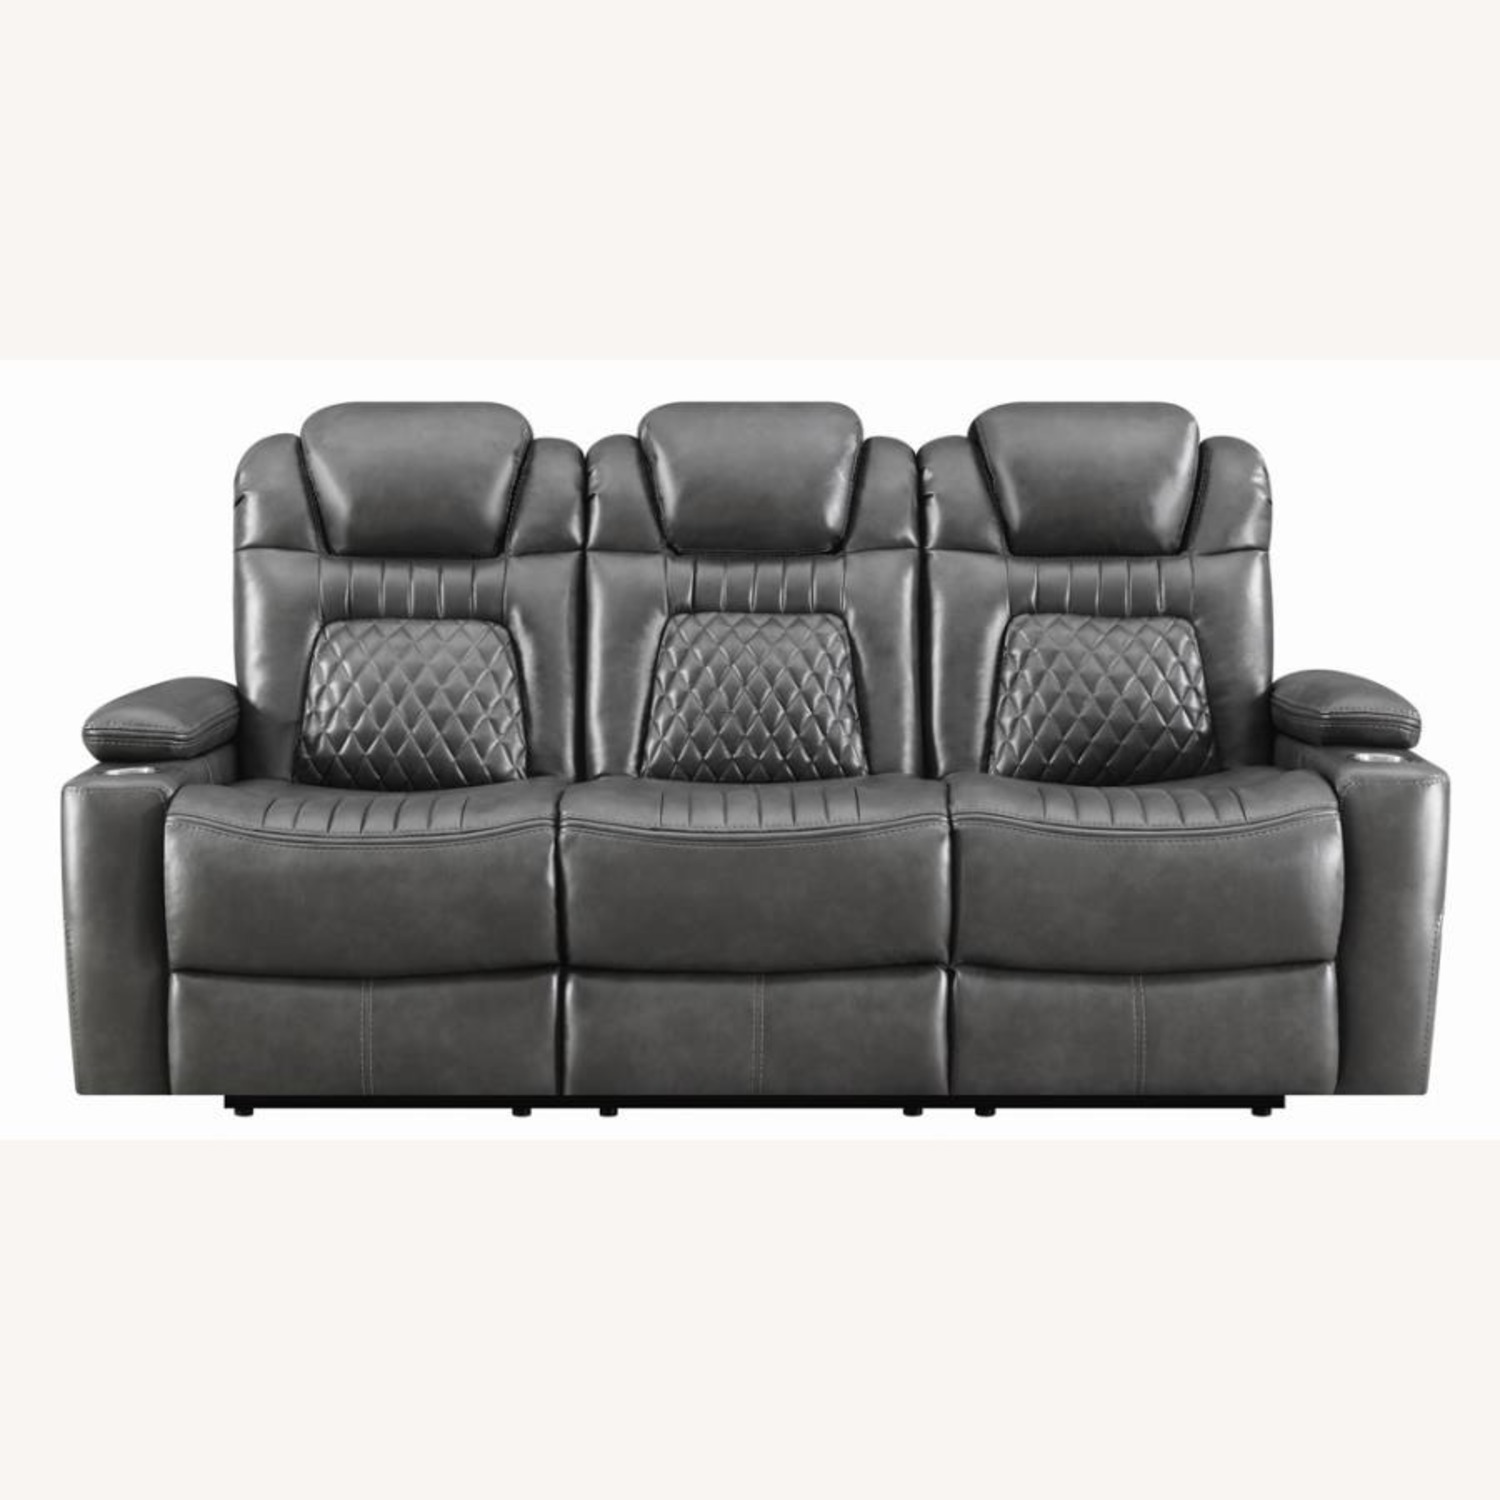 Power2 Sofa In Charcoal Leatherette - image-1